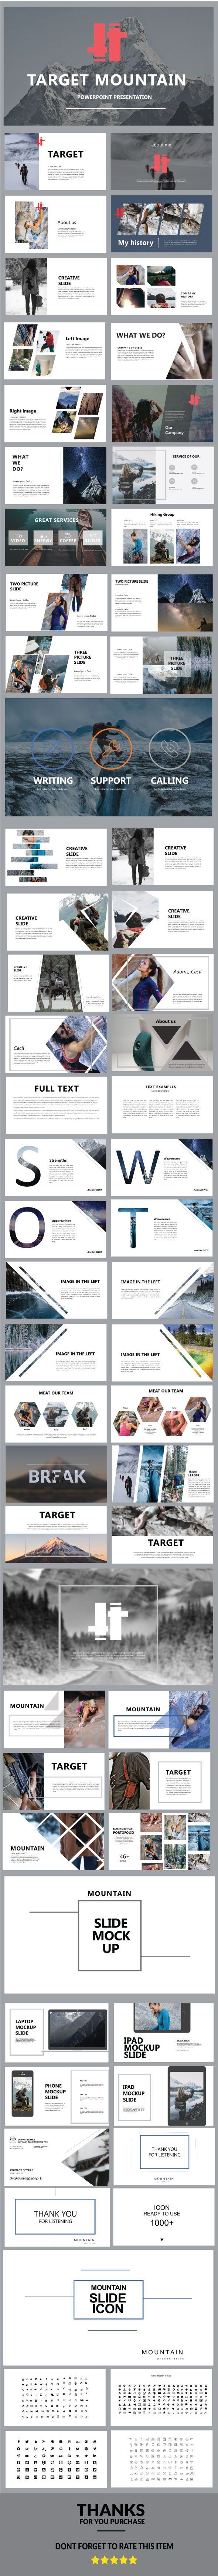 Target Mountain Presentation Templates | Business powerpoint ...